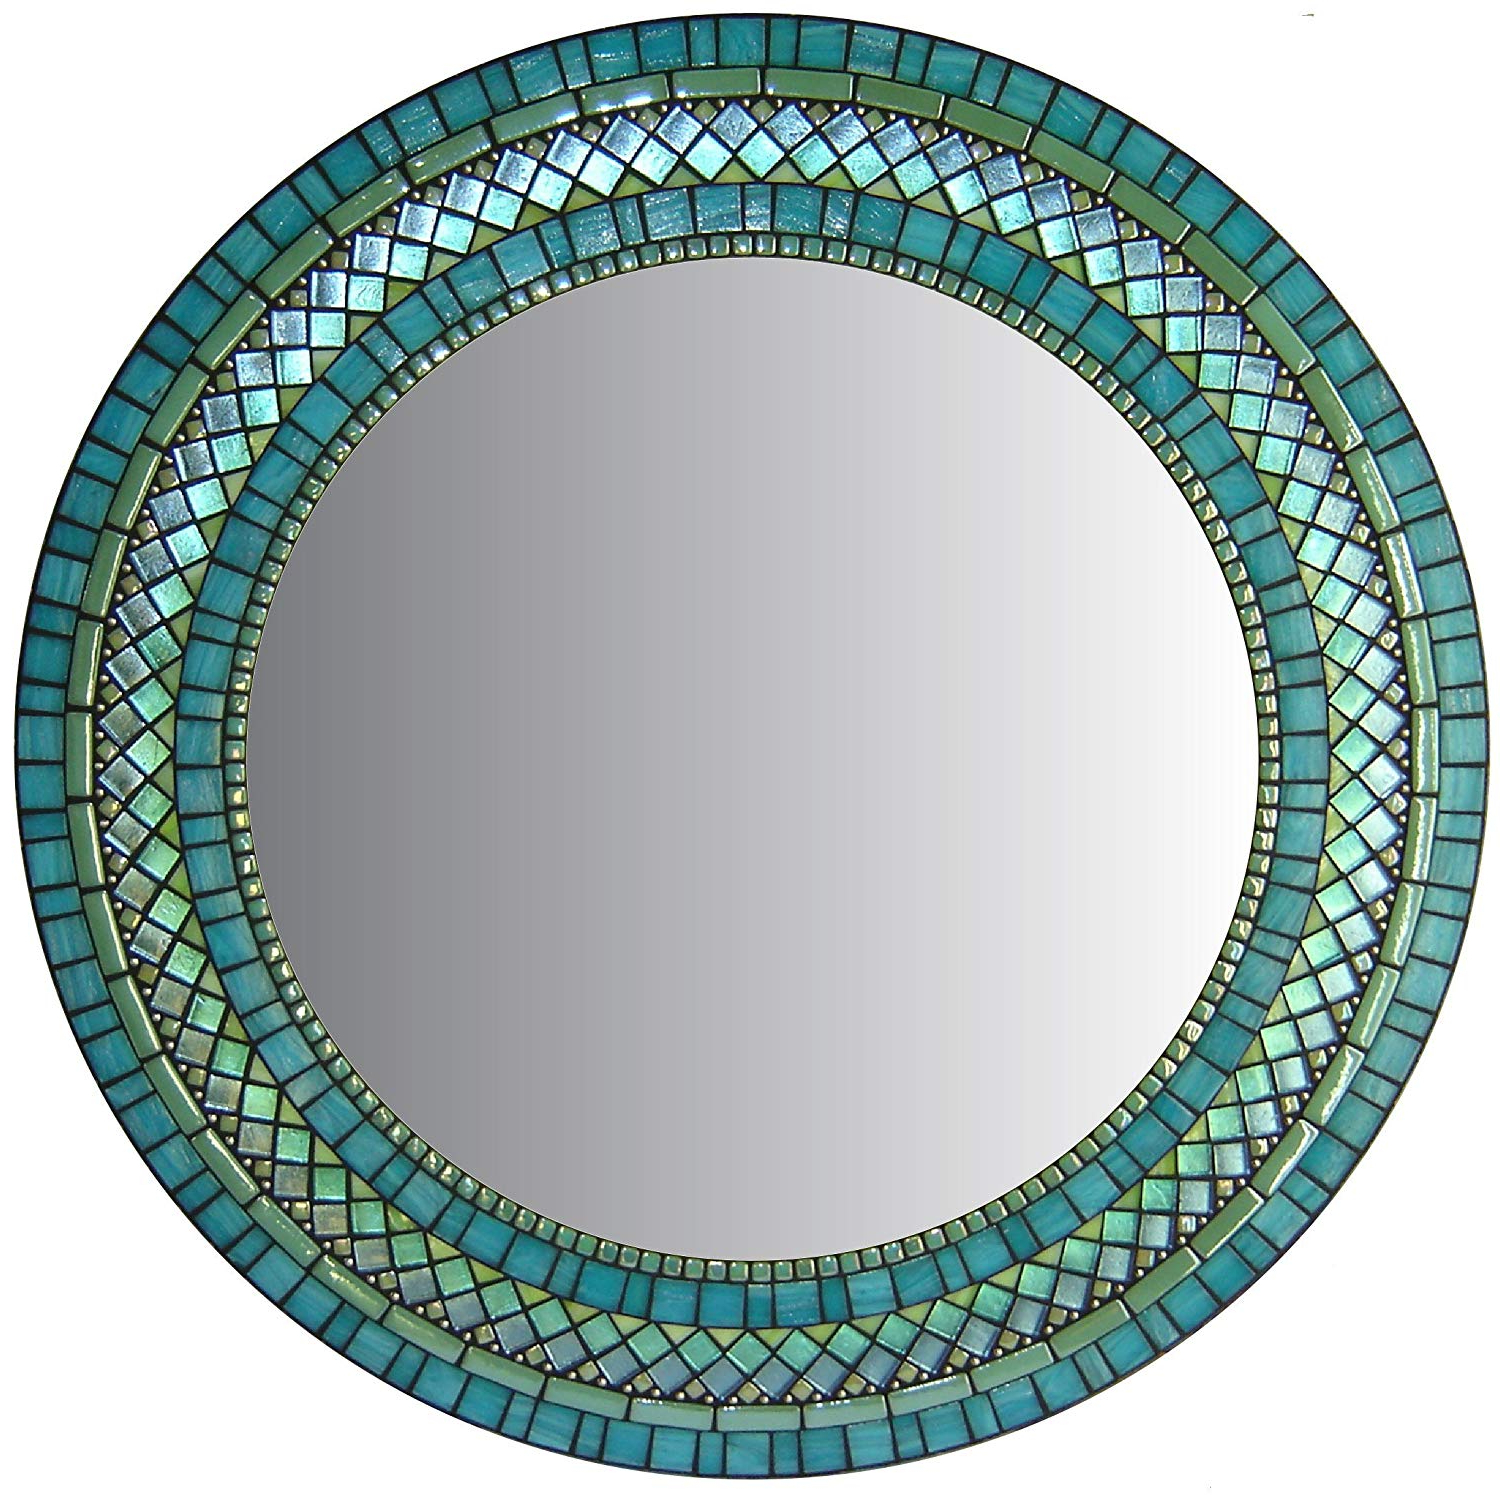 Round Mosaic Wall Mirrors Intended For Most Up To Date Amazon: Round Mosaic Wall Mirror (View 15 of 20)